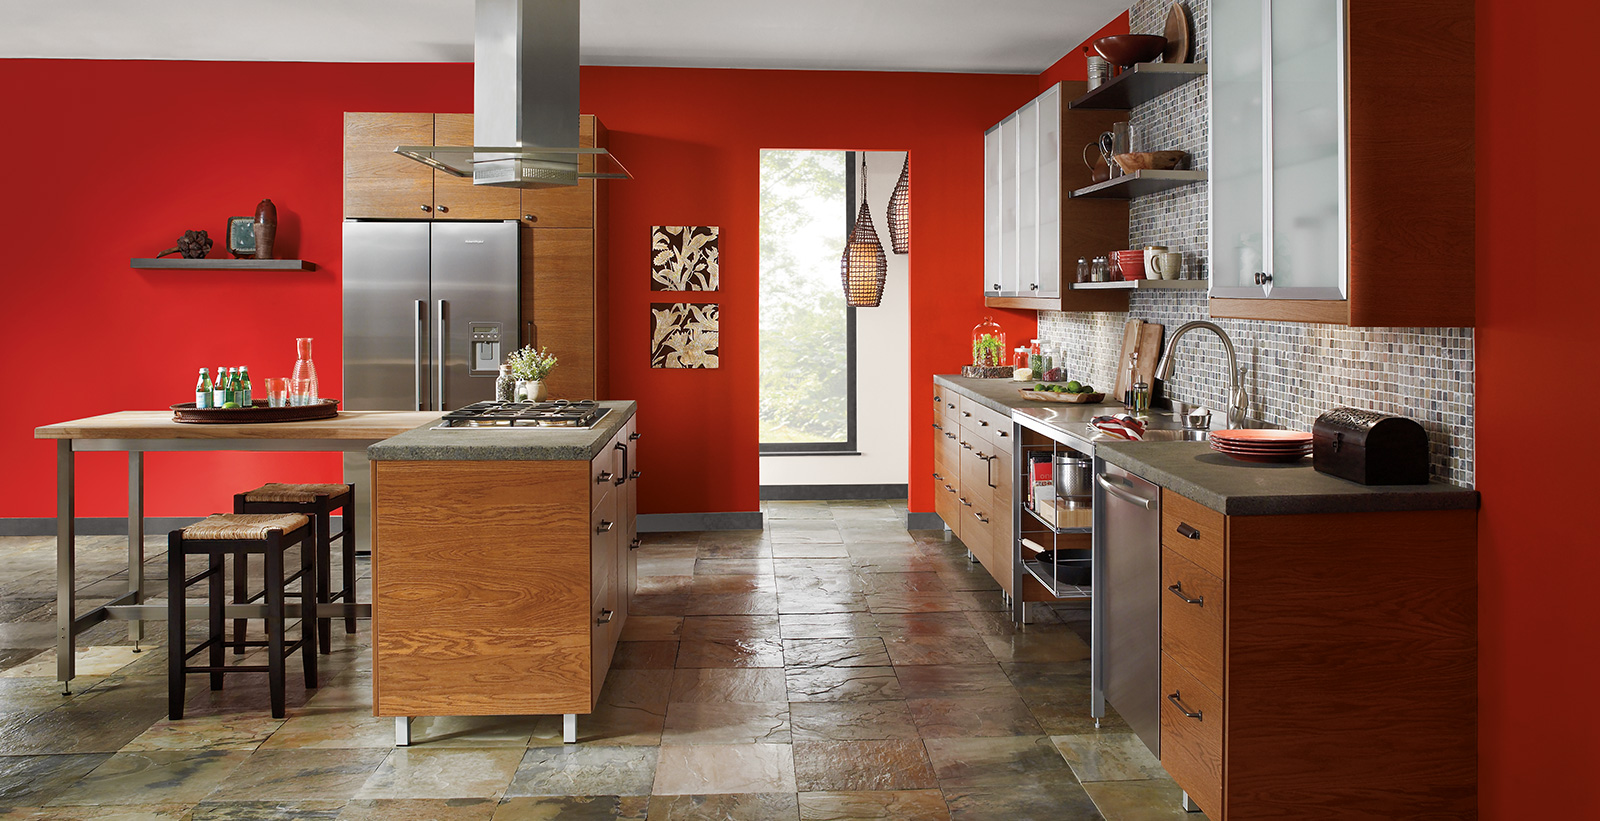 Eclectic styled kitchen with deep red on walls, wooden cabinetry, and stone flooring.